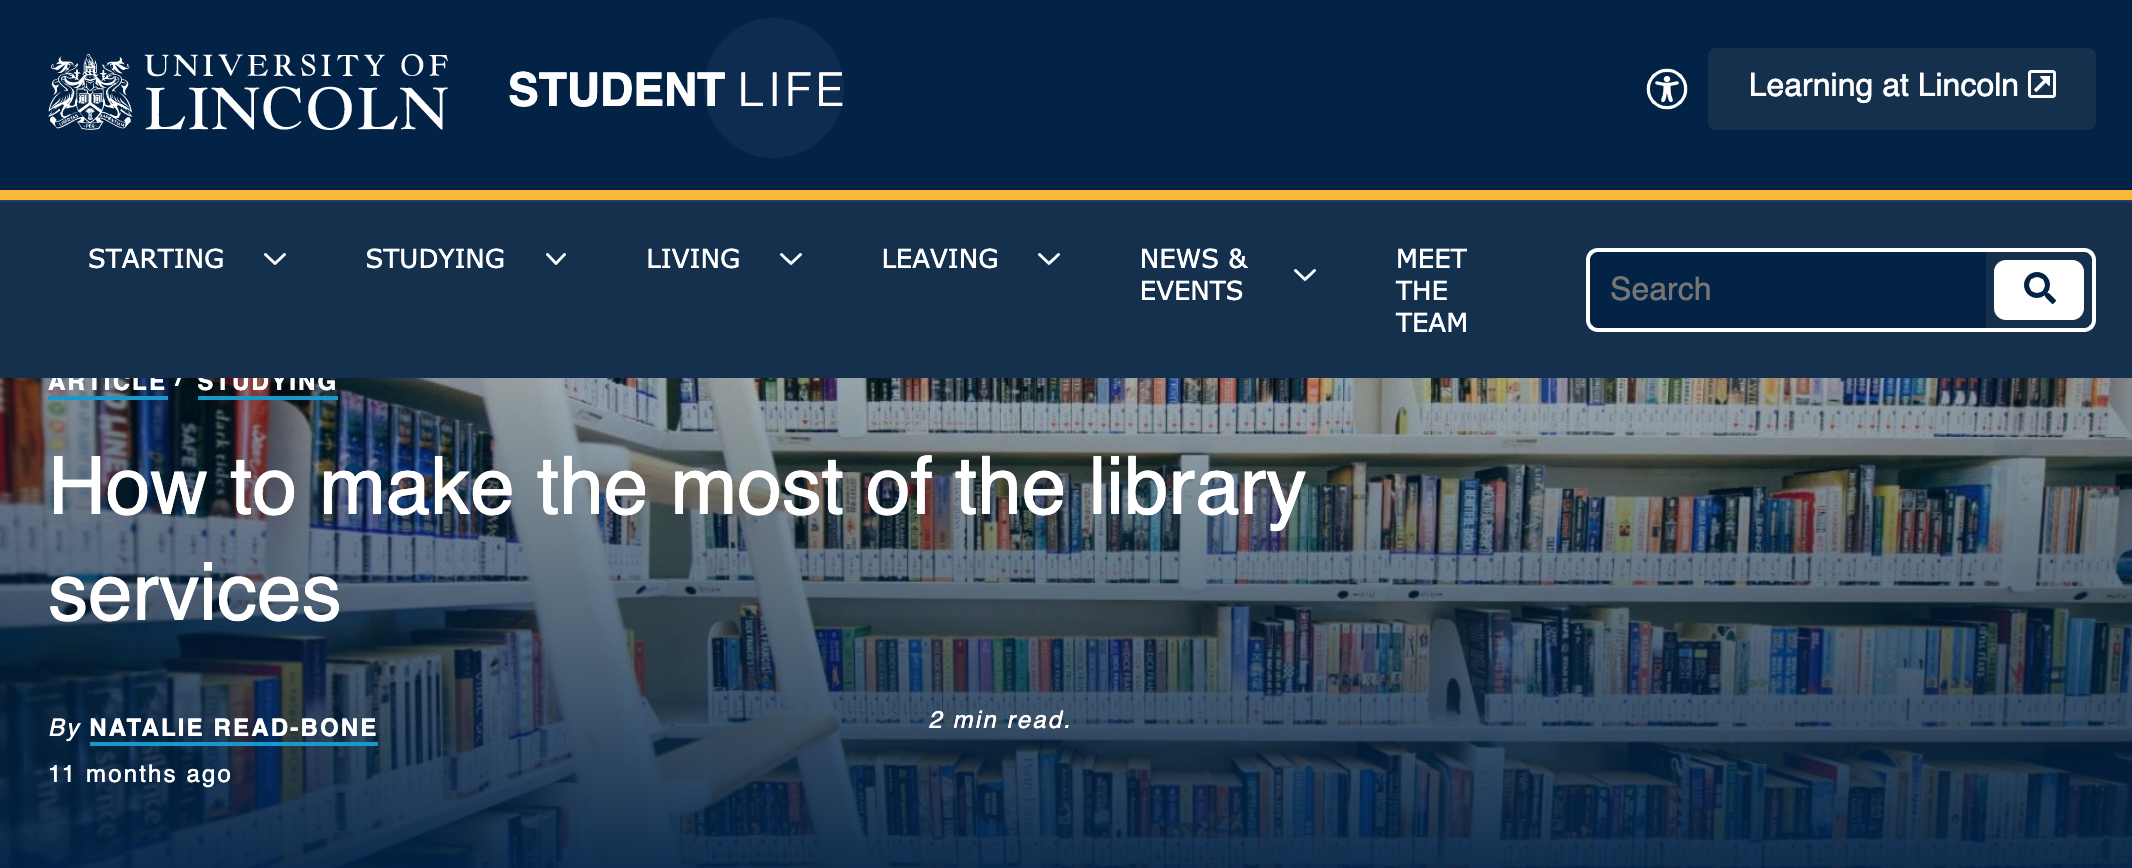 How to make the most of the library services